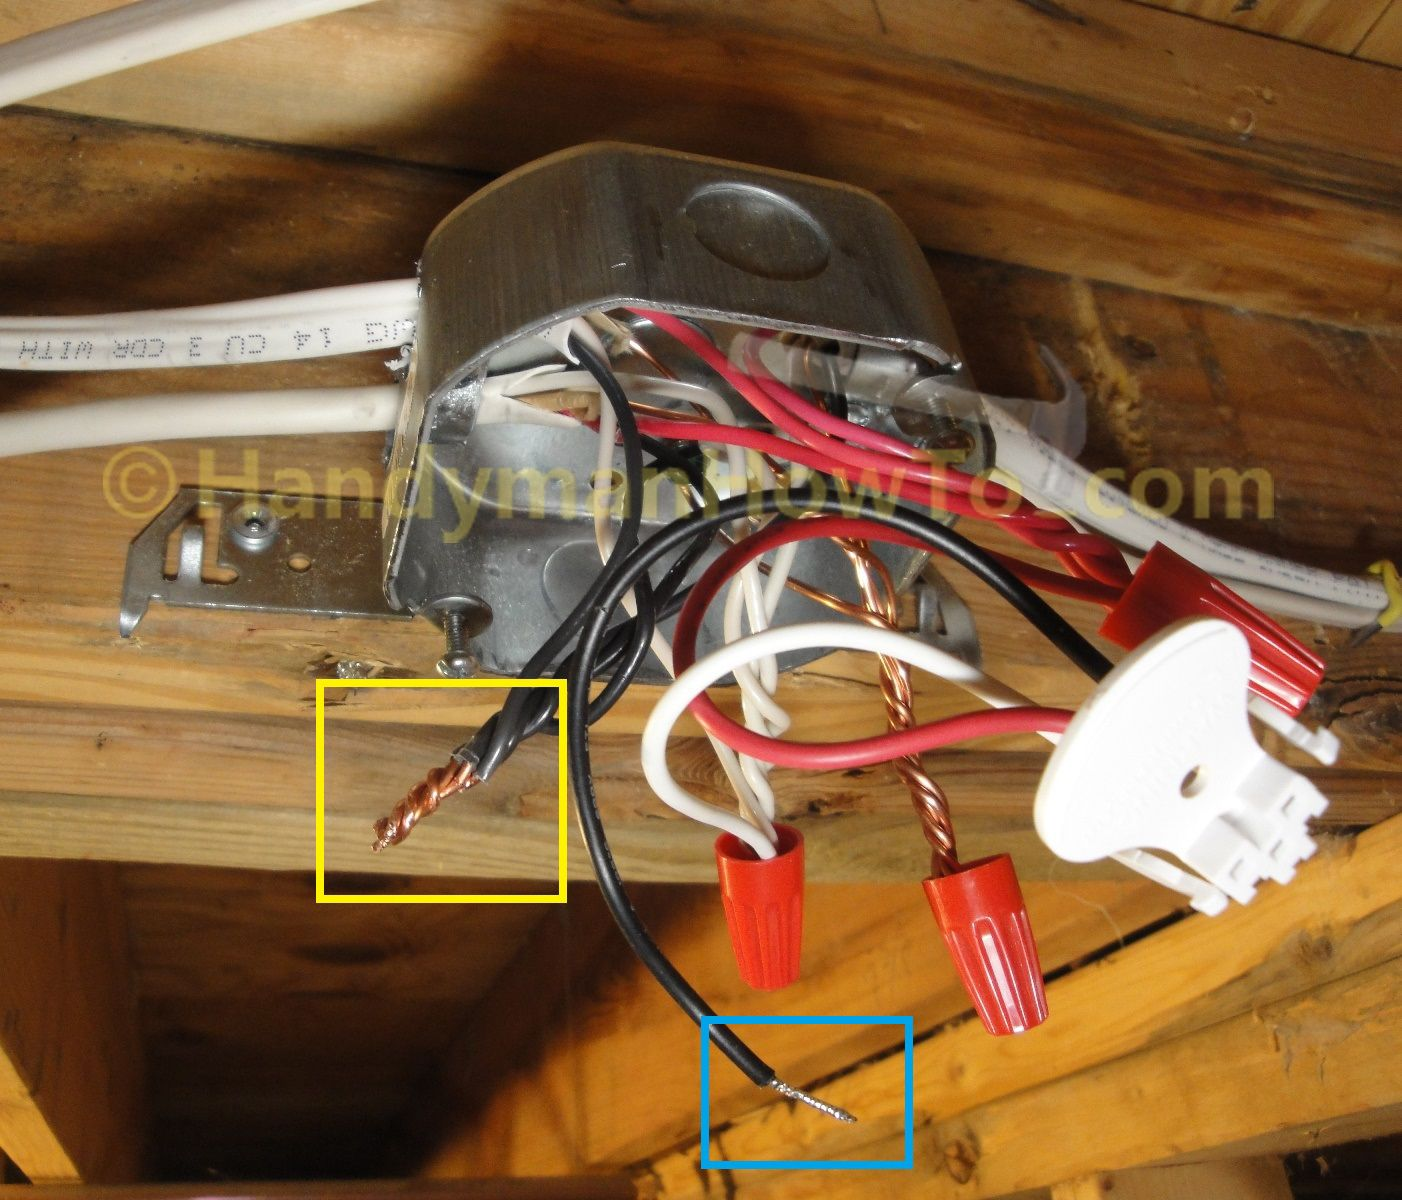 How To Install A Hardwired Smoke Alarm Photo Tutorial The Nm B 14 3 Branch Circuit Is Wired To The Main Junction Box Smoke Alarms Junction Boxes Installation,Colour Combination Exterior House Paint Colors Photo Gallery 2020